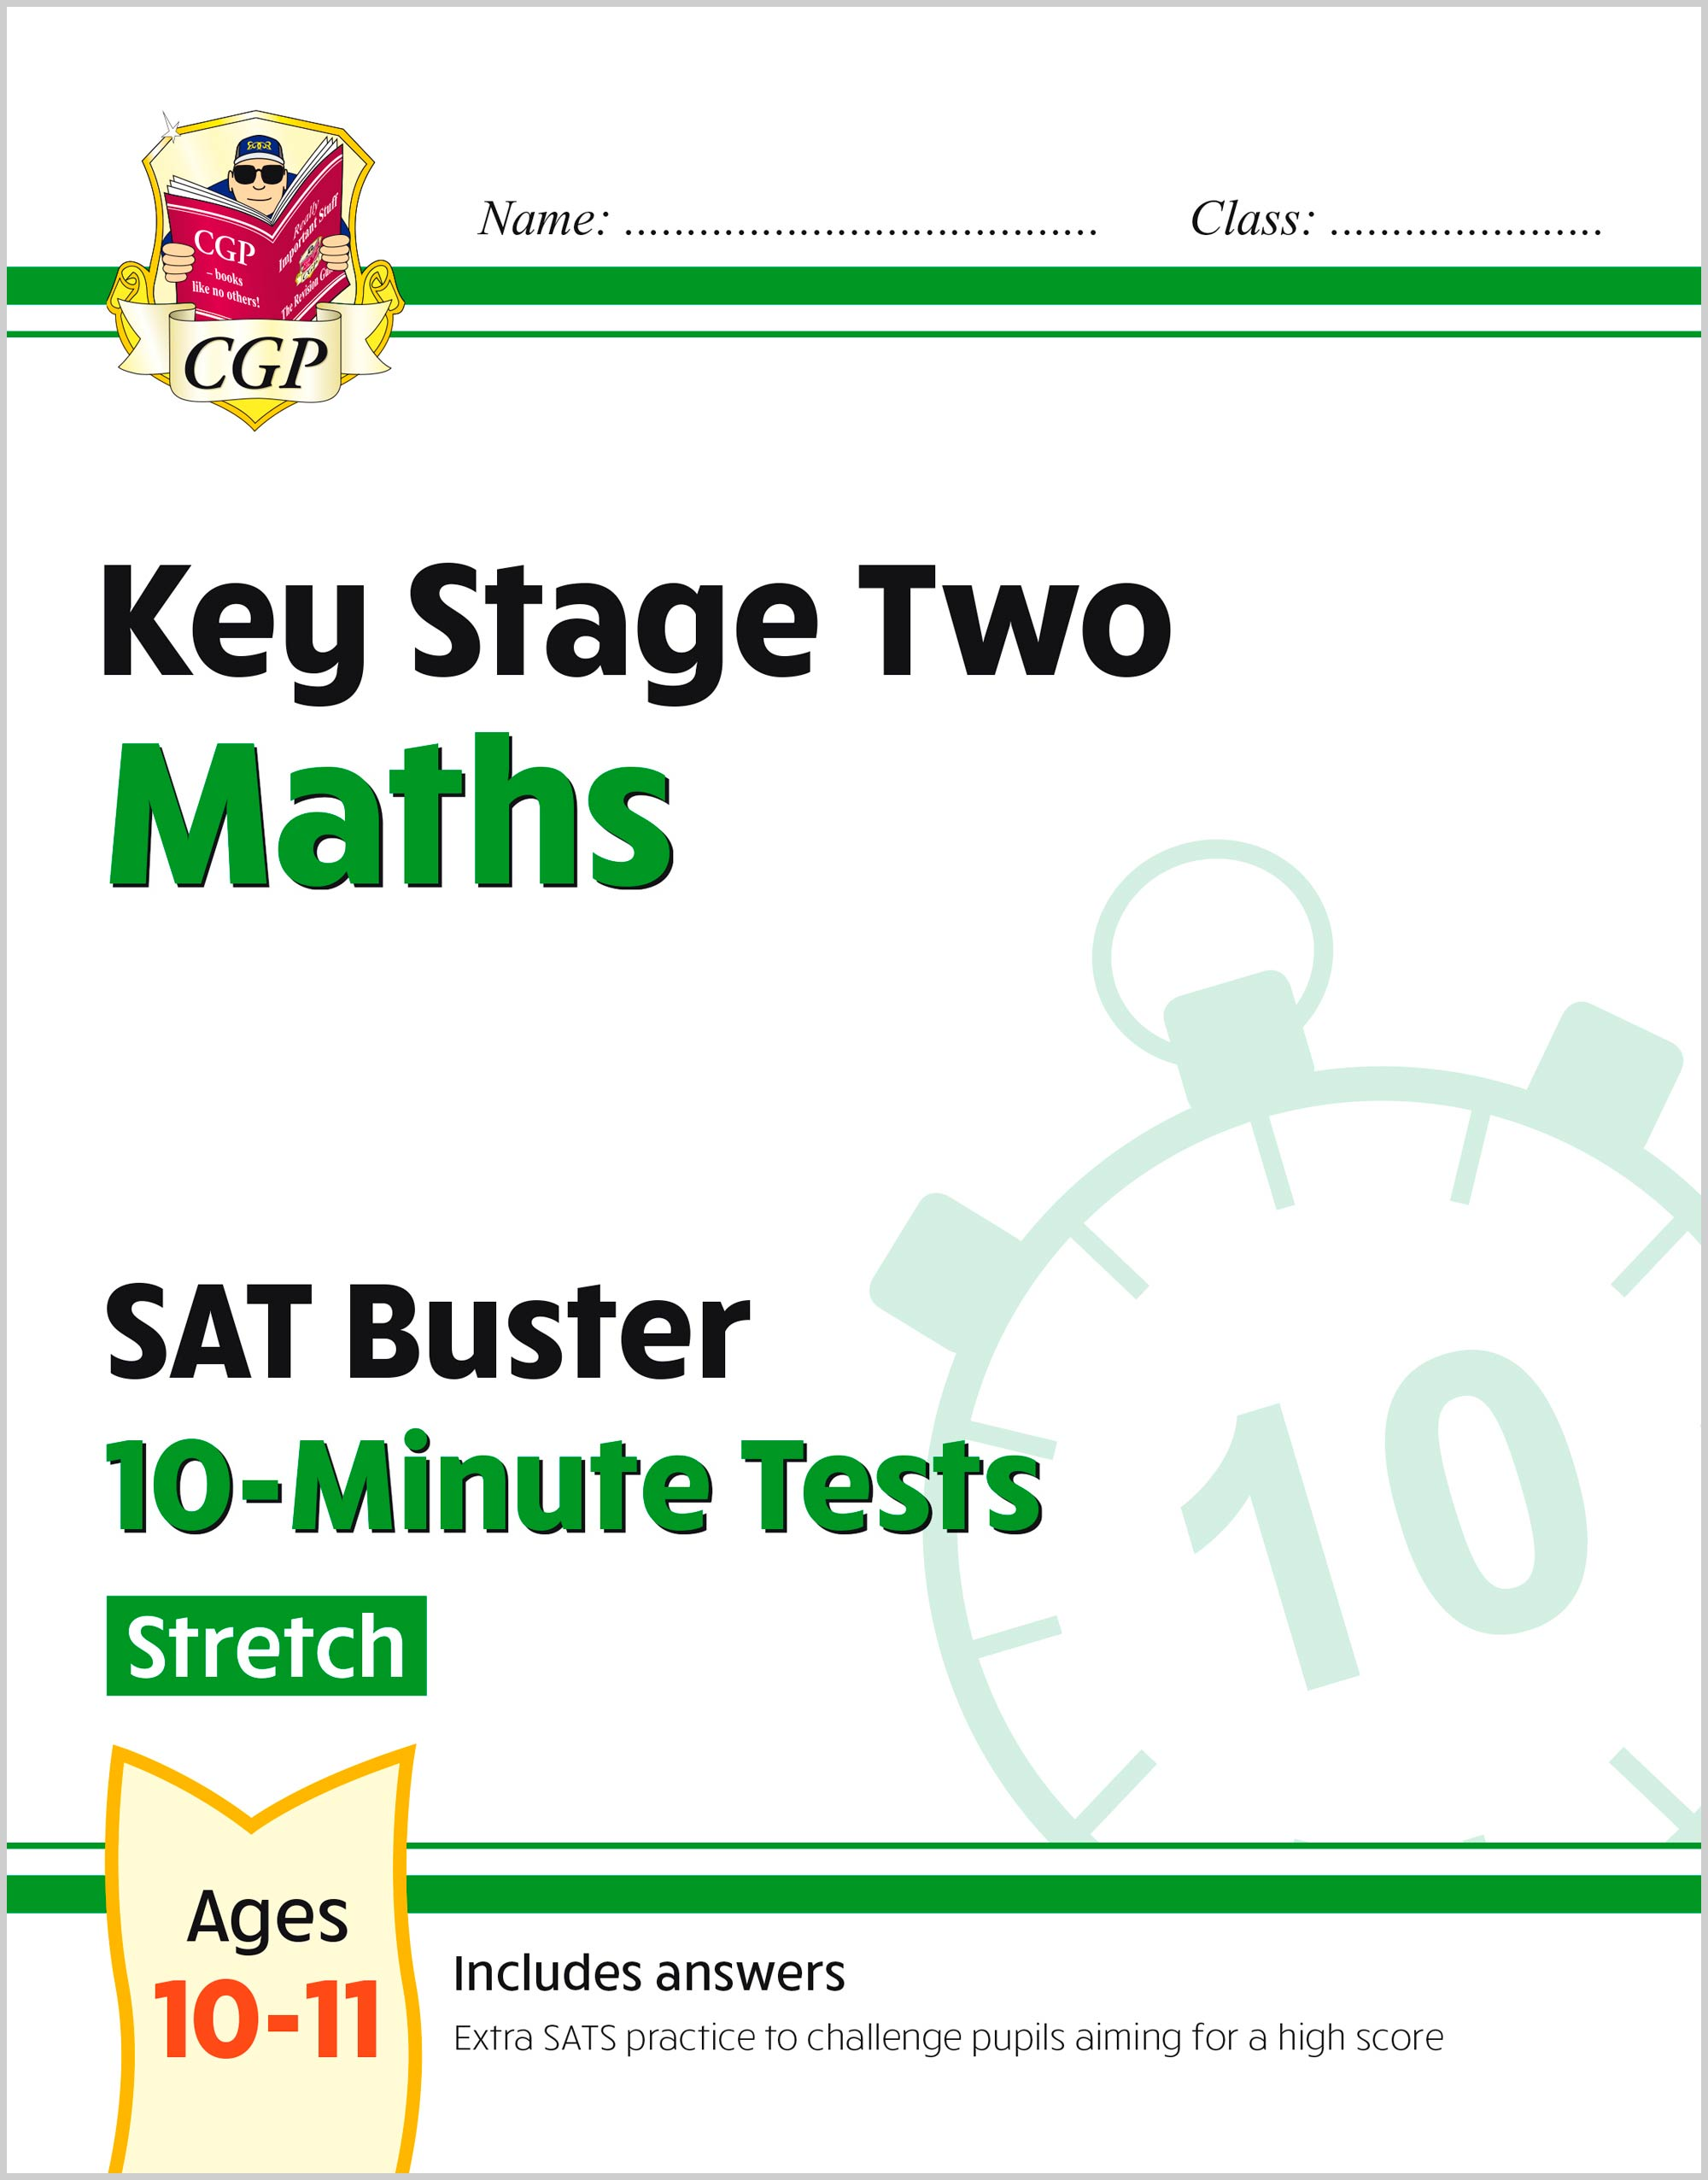 MLHXP22 - New KS2 Maths SAT Buster 10-Minute Tests - Stretch (for the 2021 tests)